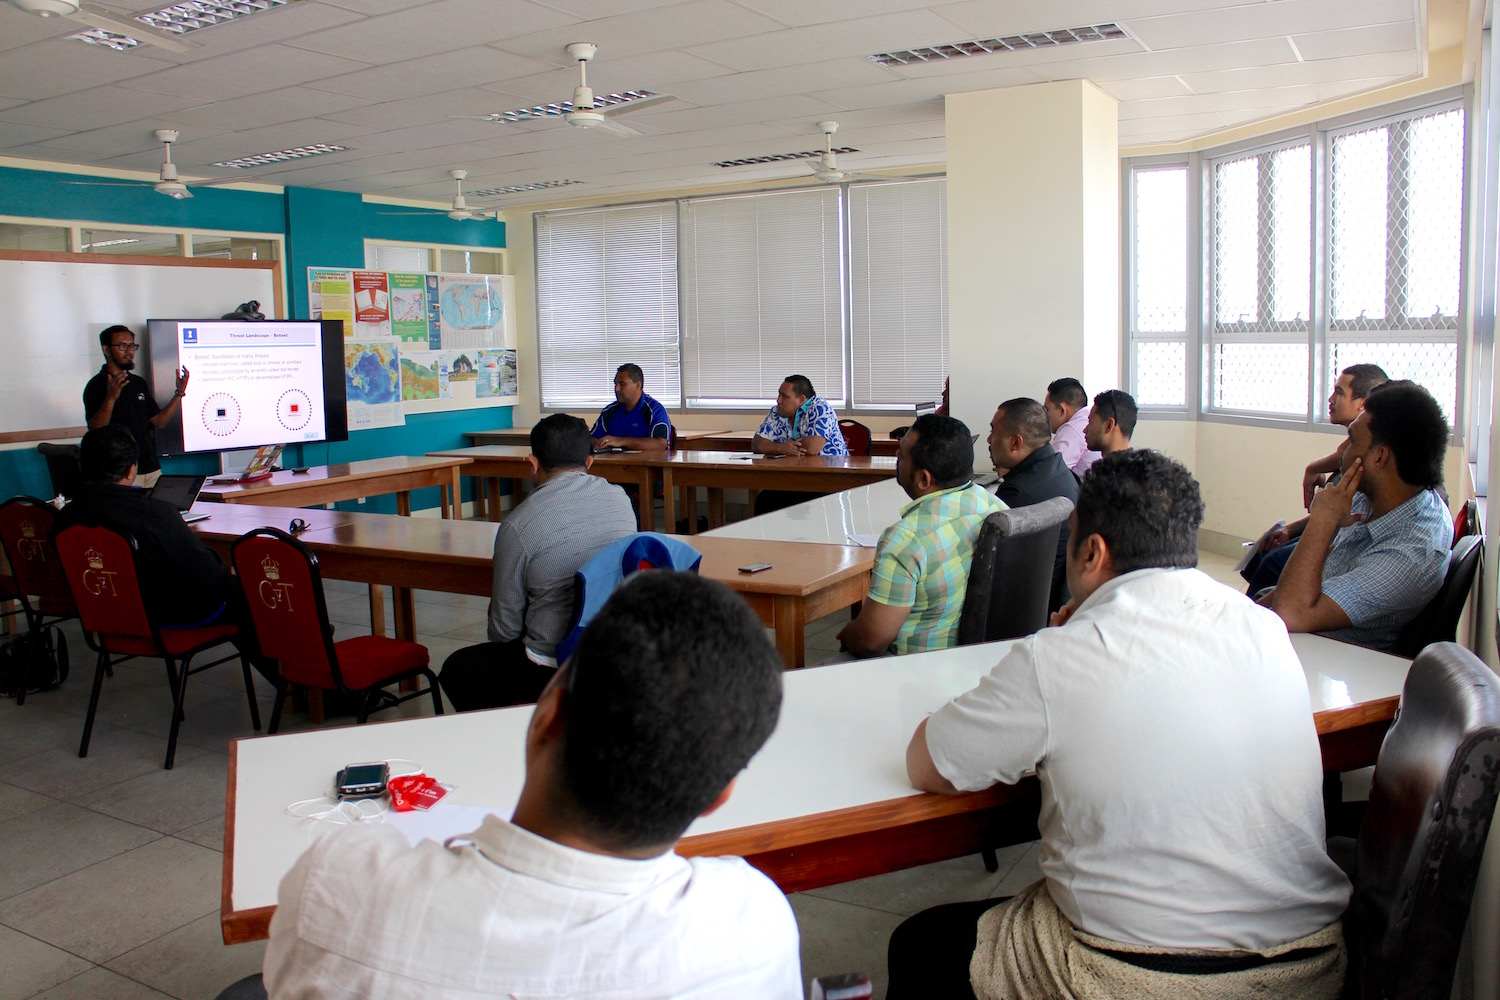 APNIC was invited to conduct a two-day Computer Emergency Response Team (CERT) workshop, 12 to 13 May 2016 in Nuku'alofa, Tonga